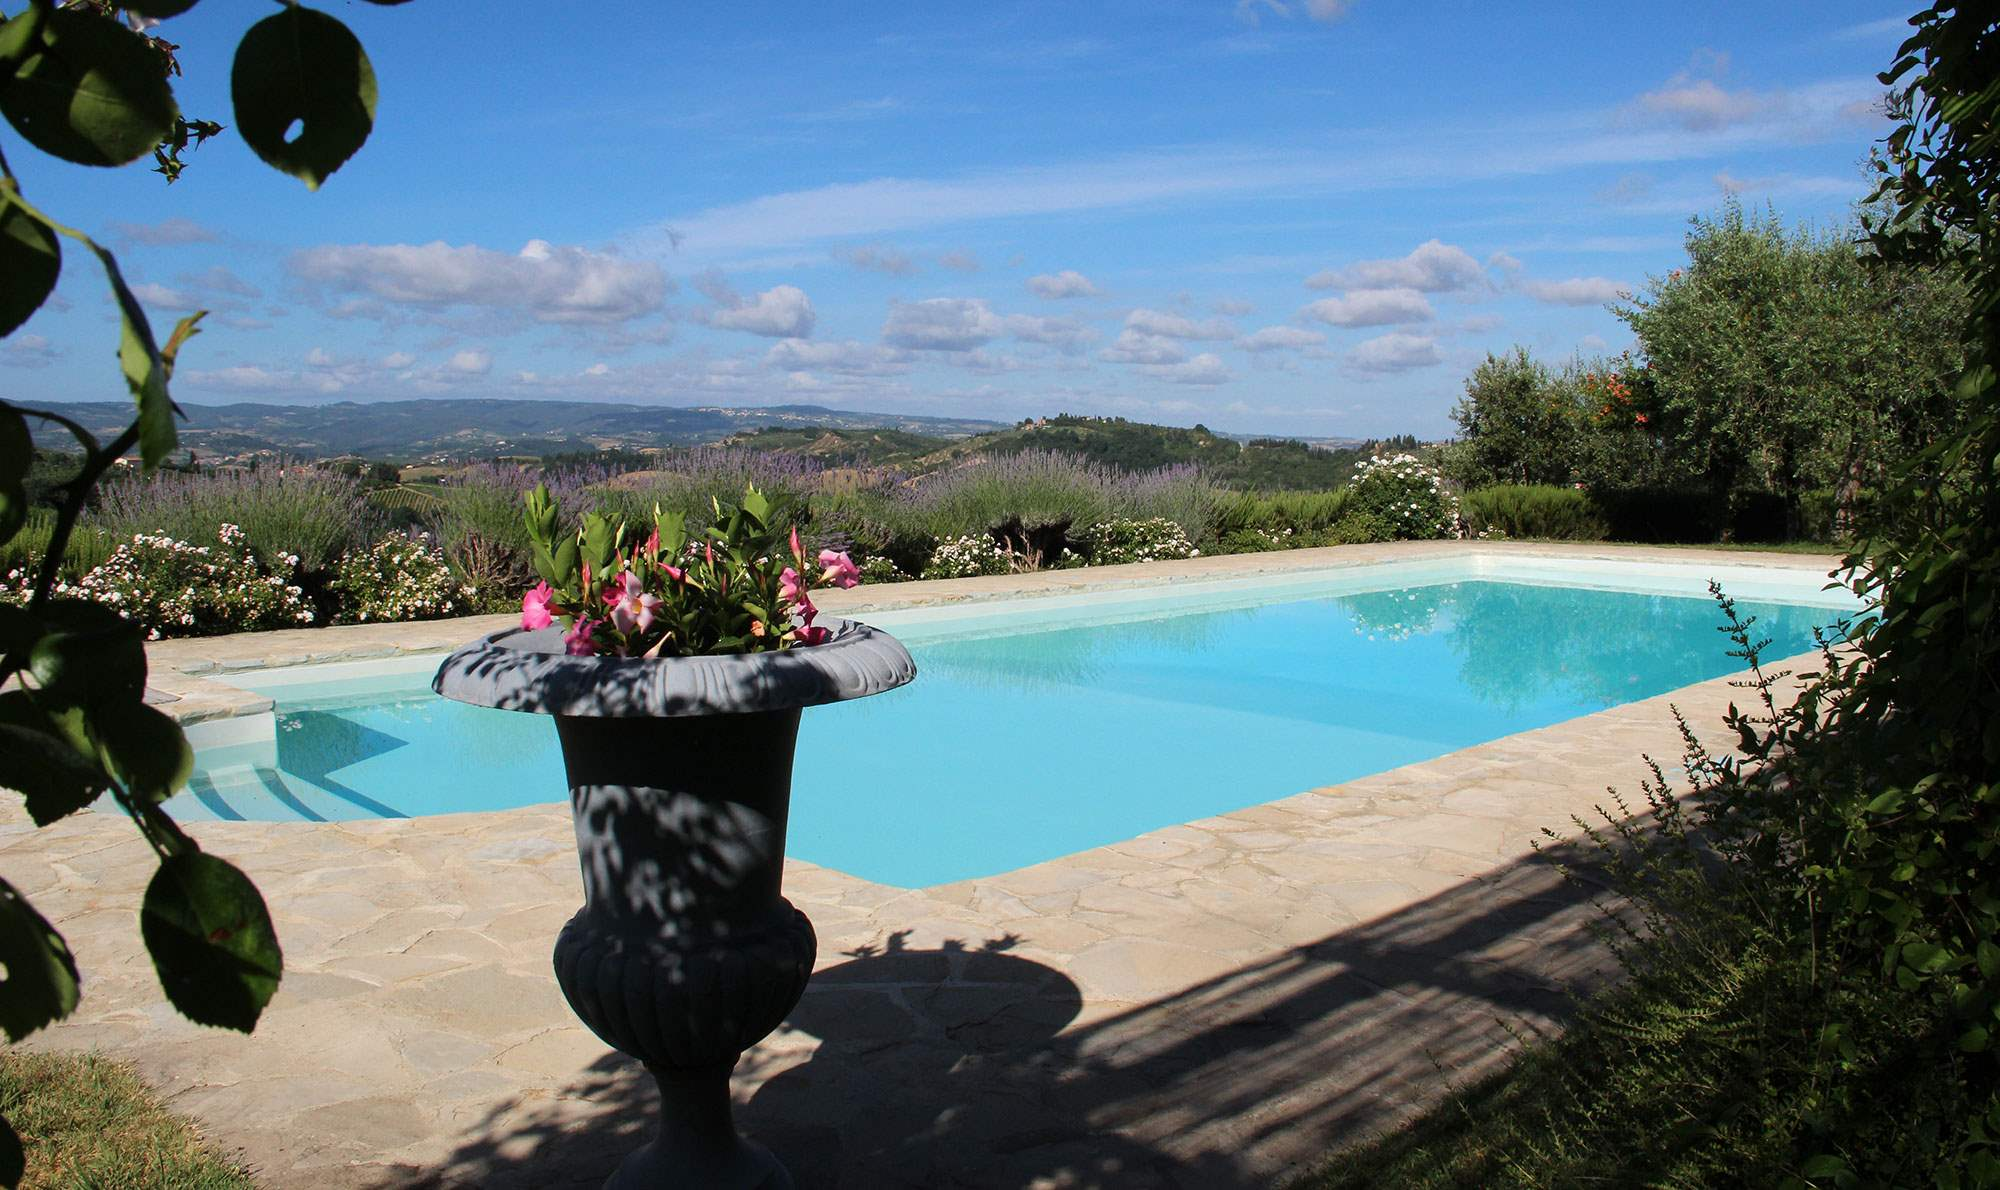 Villa Capanna, 3 bedroom villa in Chianti & Countryside, Tuscany Photo #10